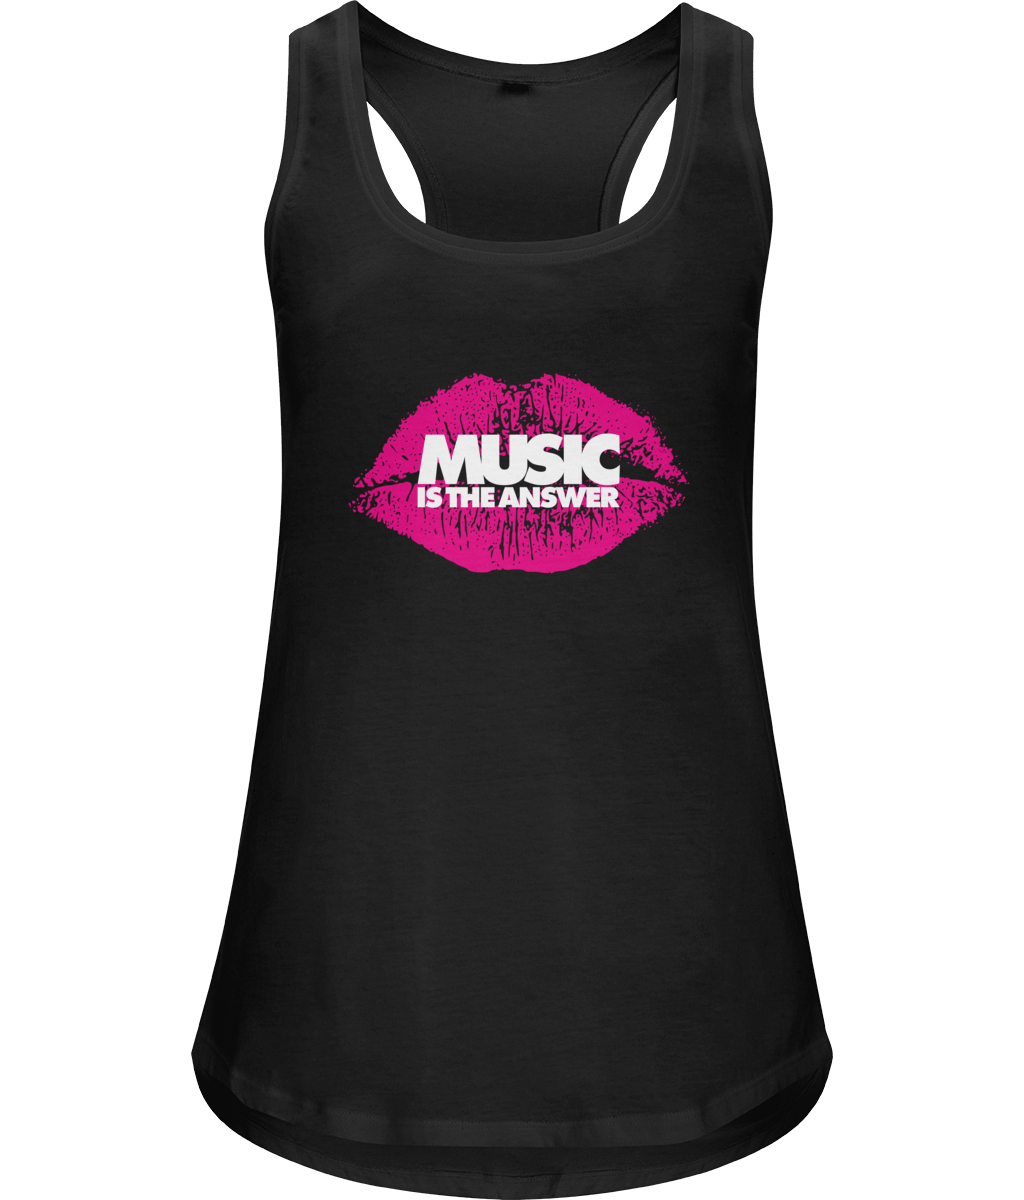 Women's Racerback Vest Lips Music